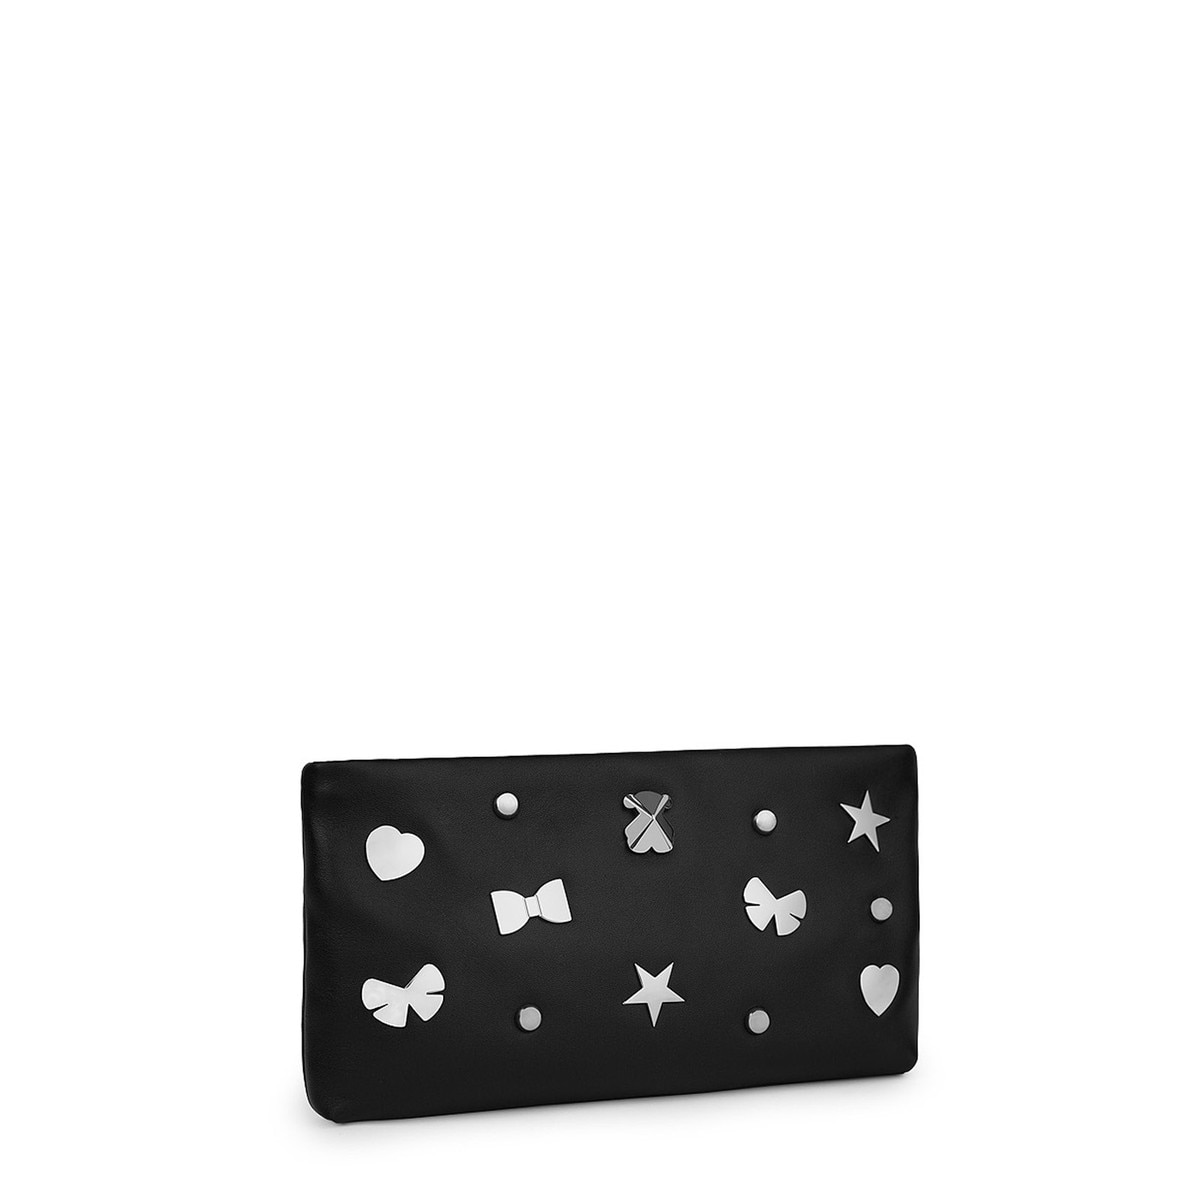 Clutch Melibea de Piel en color negro